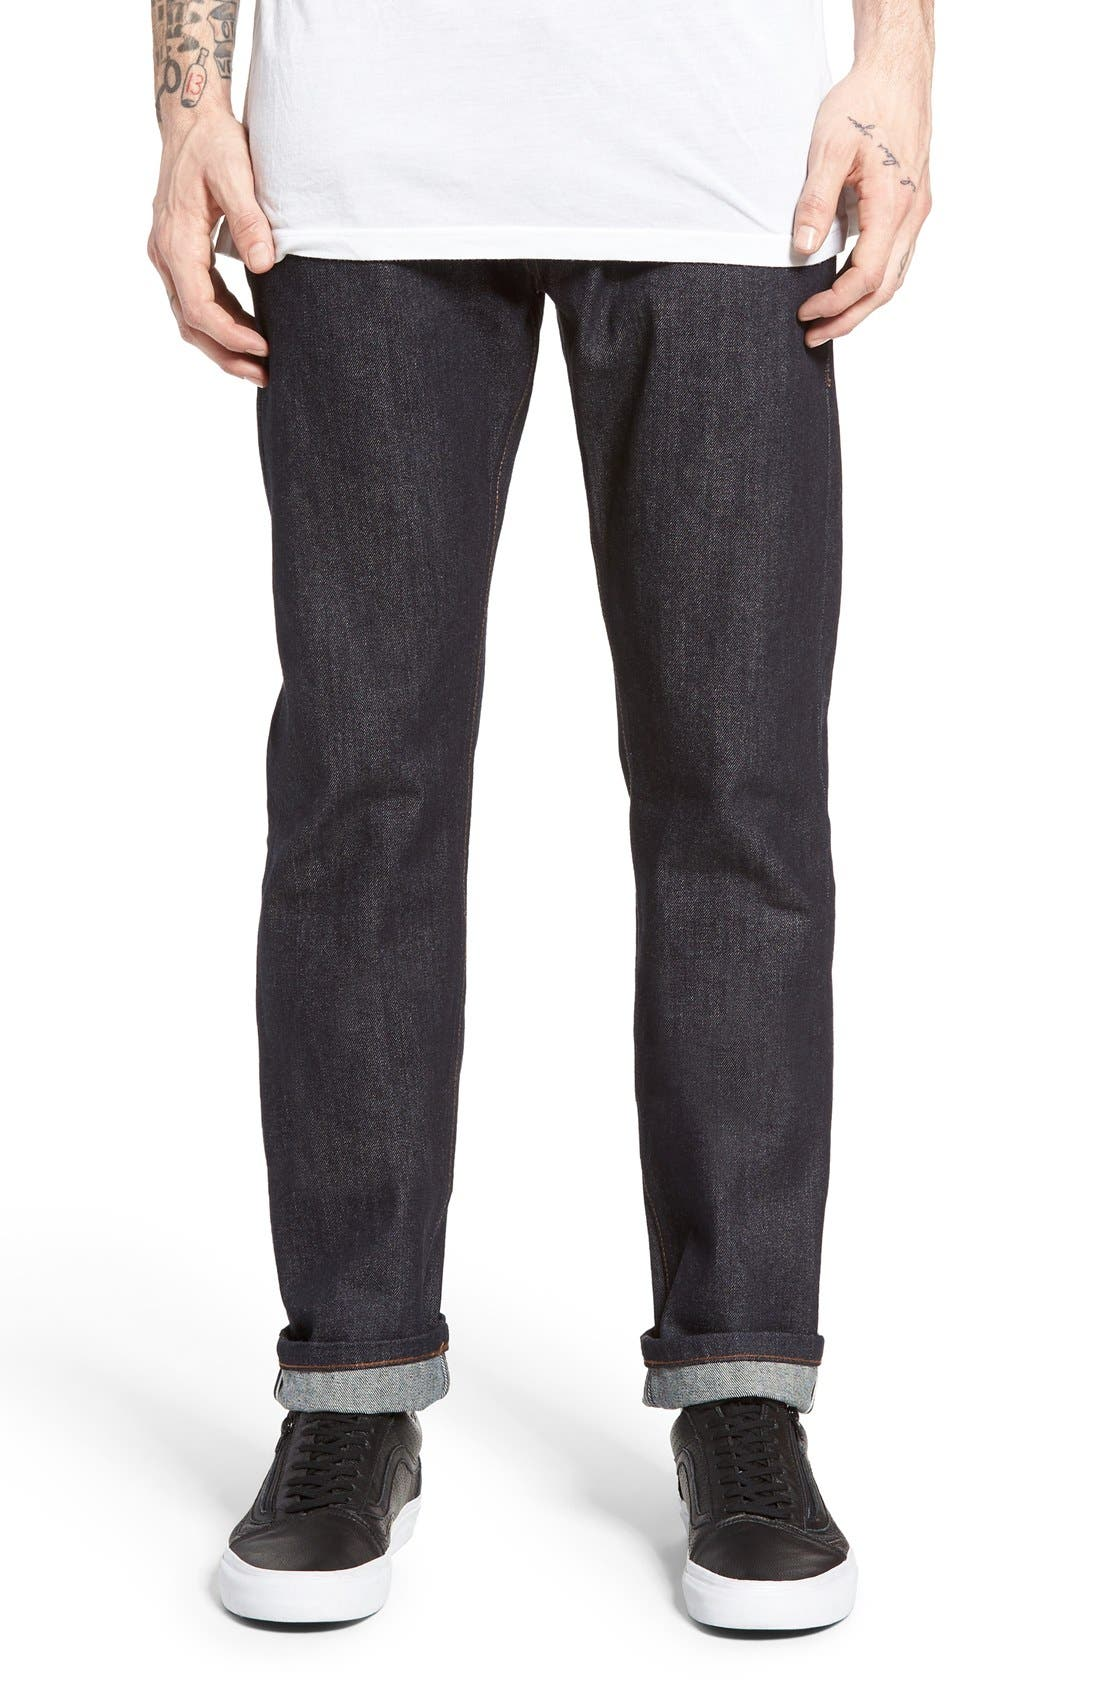 THE UNBRANDED BRAND UB201 Tapered Fit Raw Selvedge Jeans